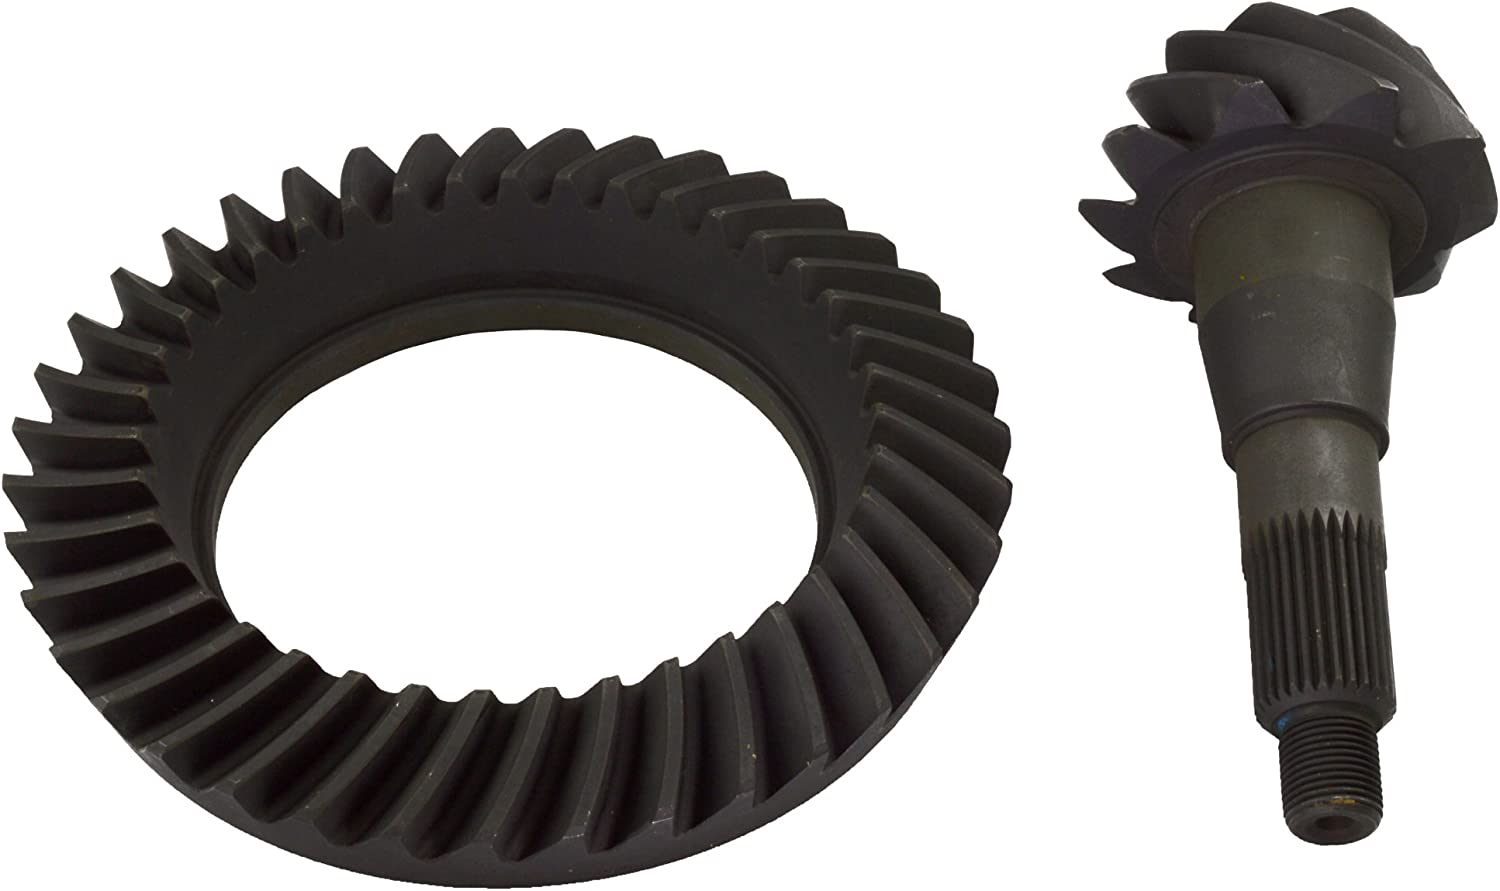 3.9 Ratio SVL 2020612 Differential Ring and Pinion Gear Set for Chrysler 9.25